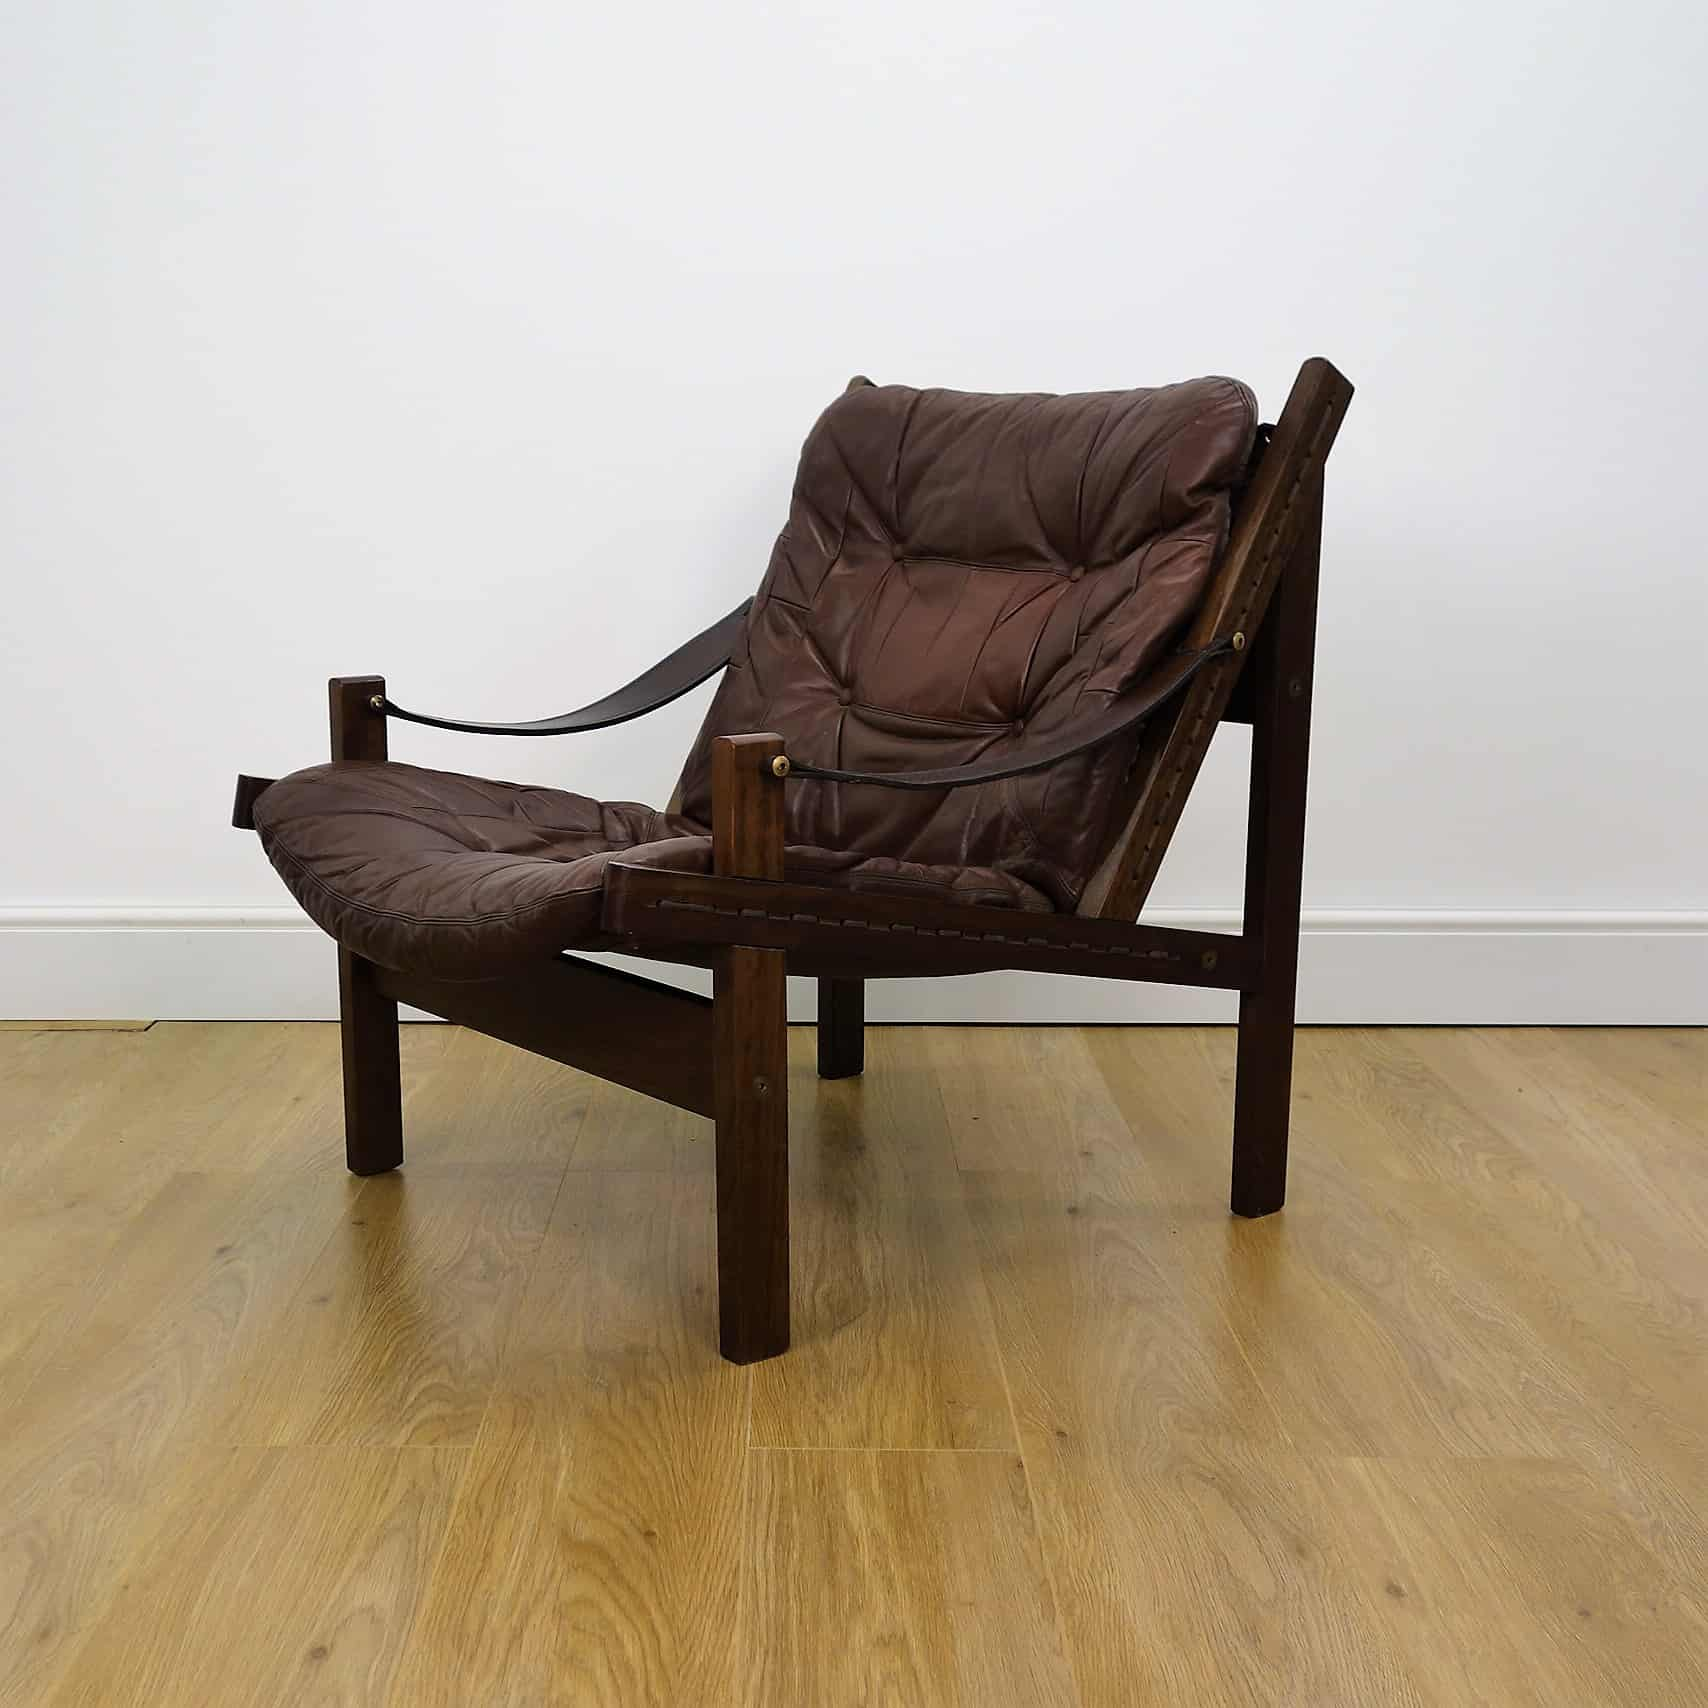 1960s leather Hunter chair by Torbjørn Afdal Norway